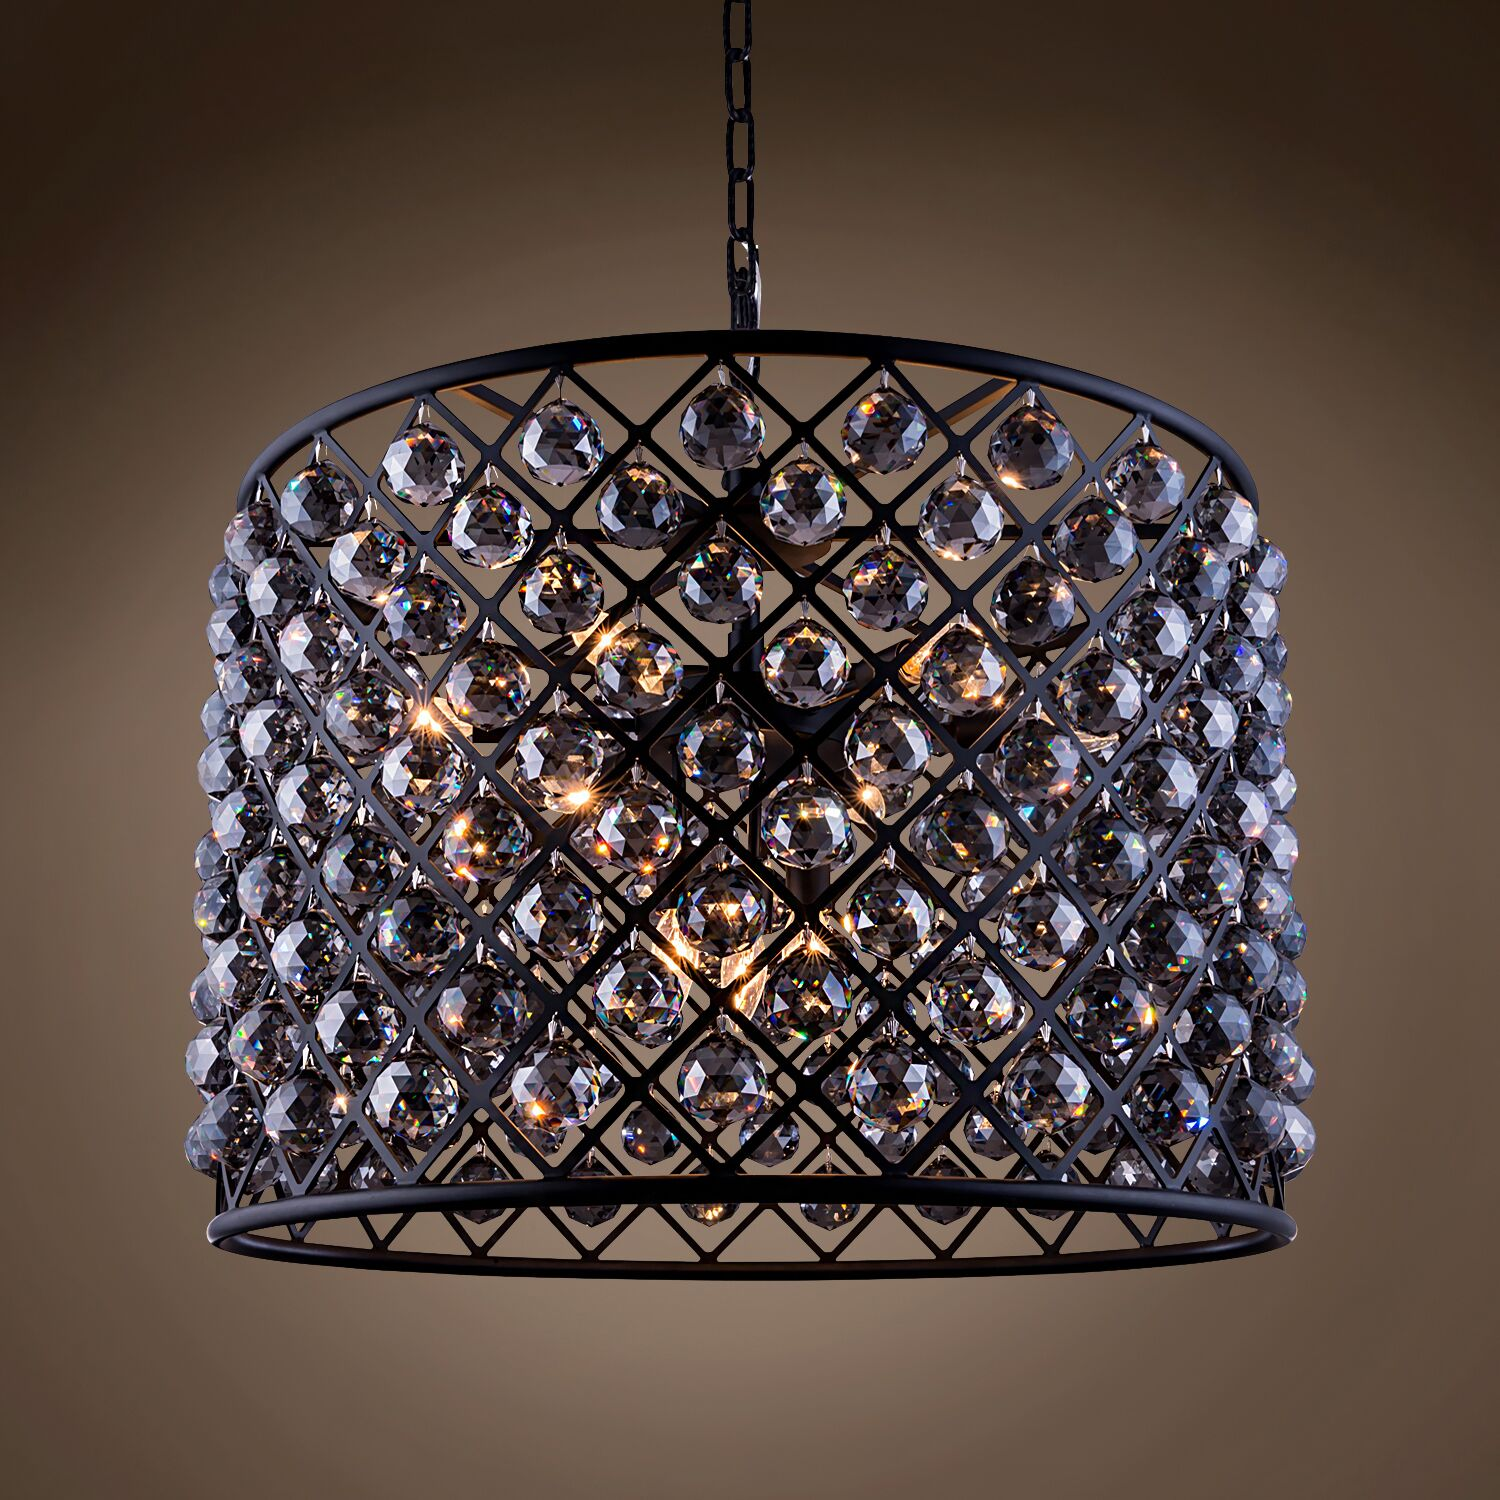 Lulsgate 8-Light Chandelier Finish: Gray, Bulb Type: LED, Shade Color: Smoke